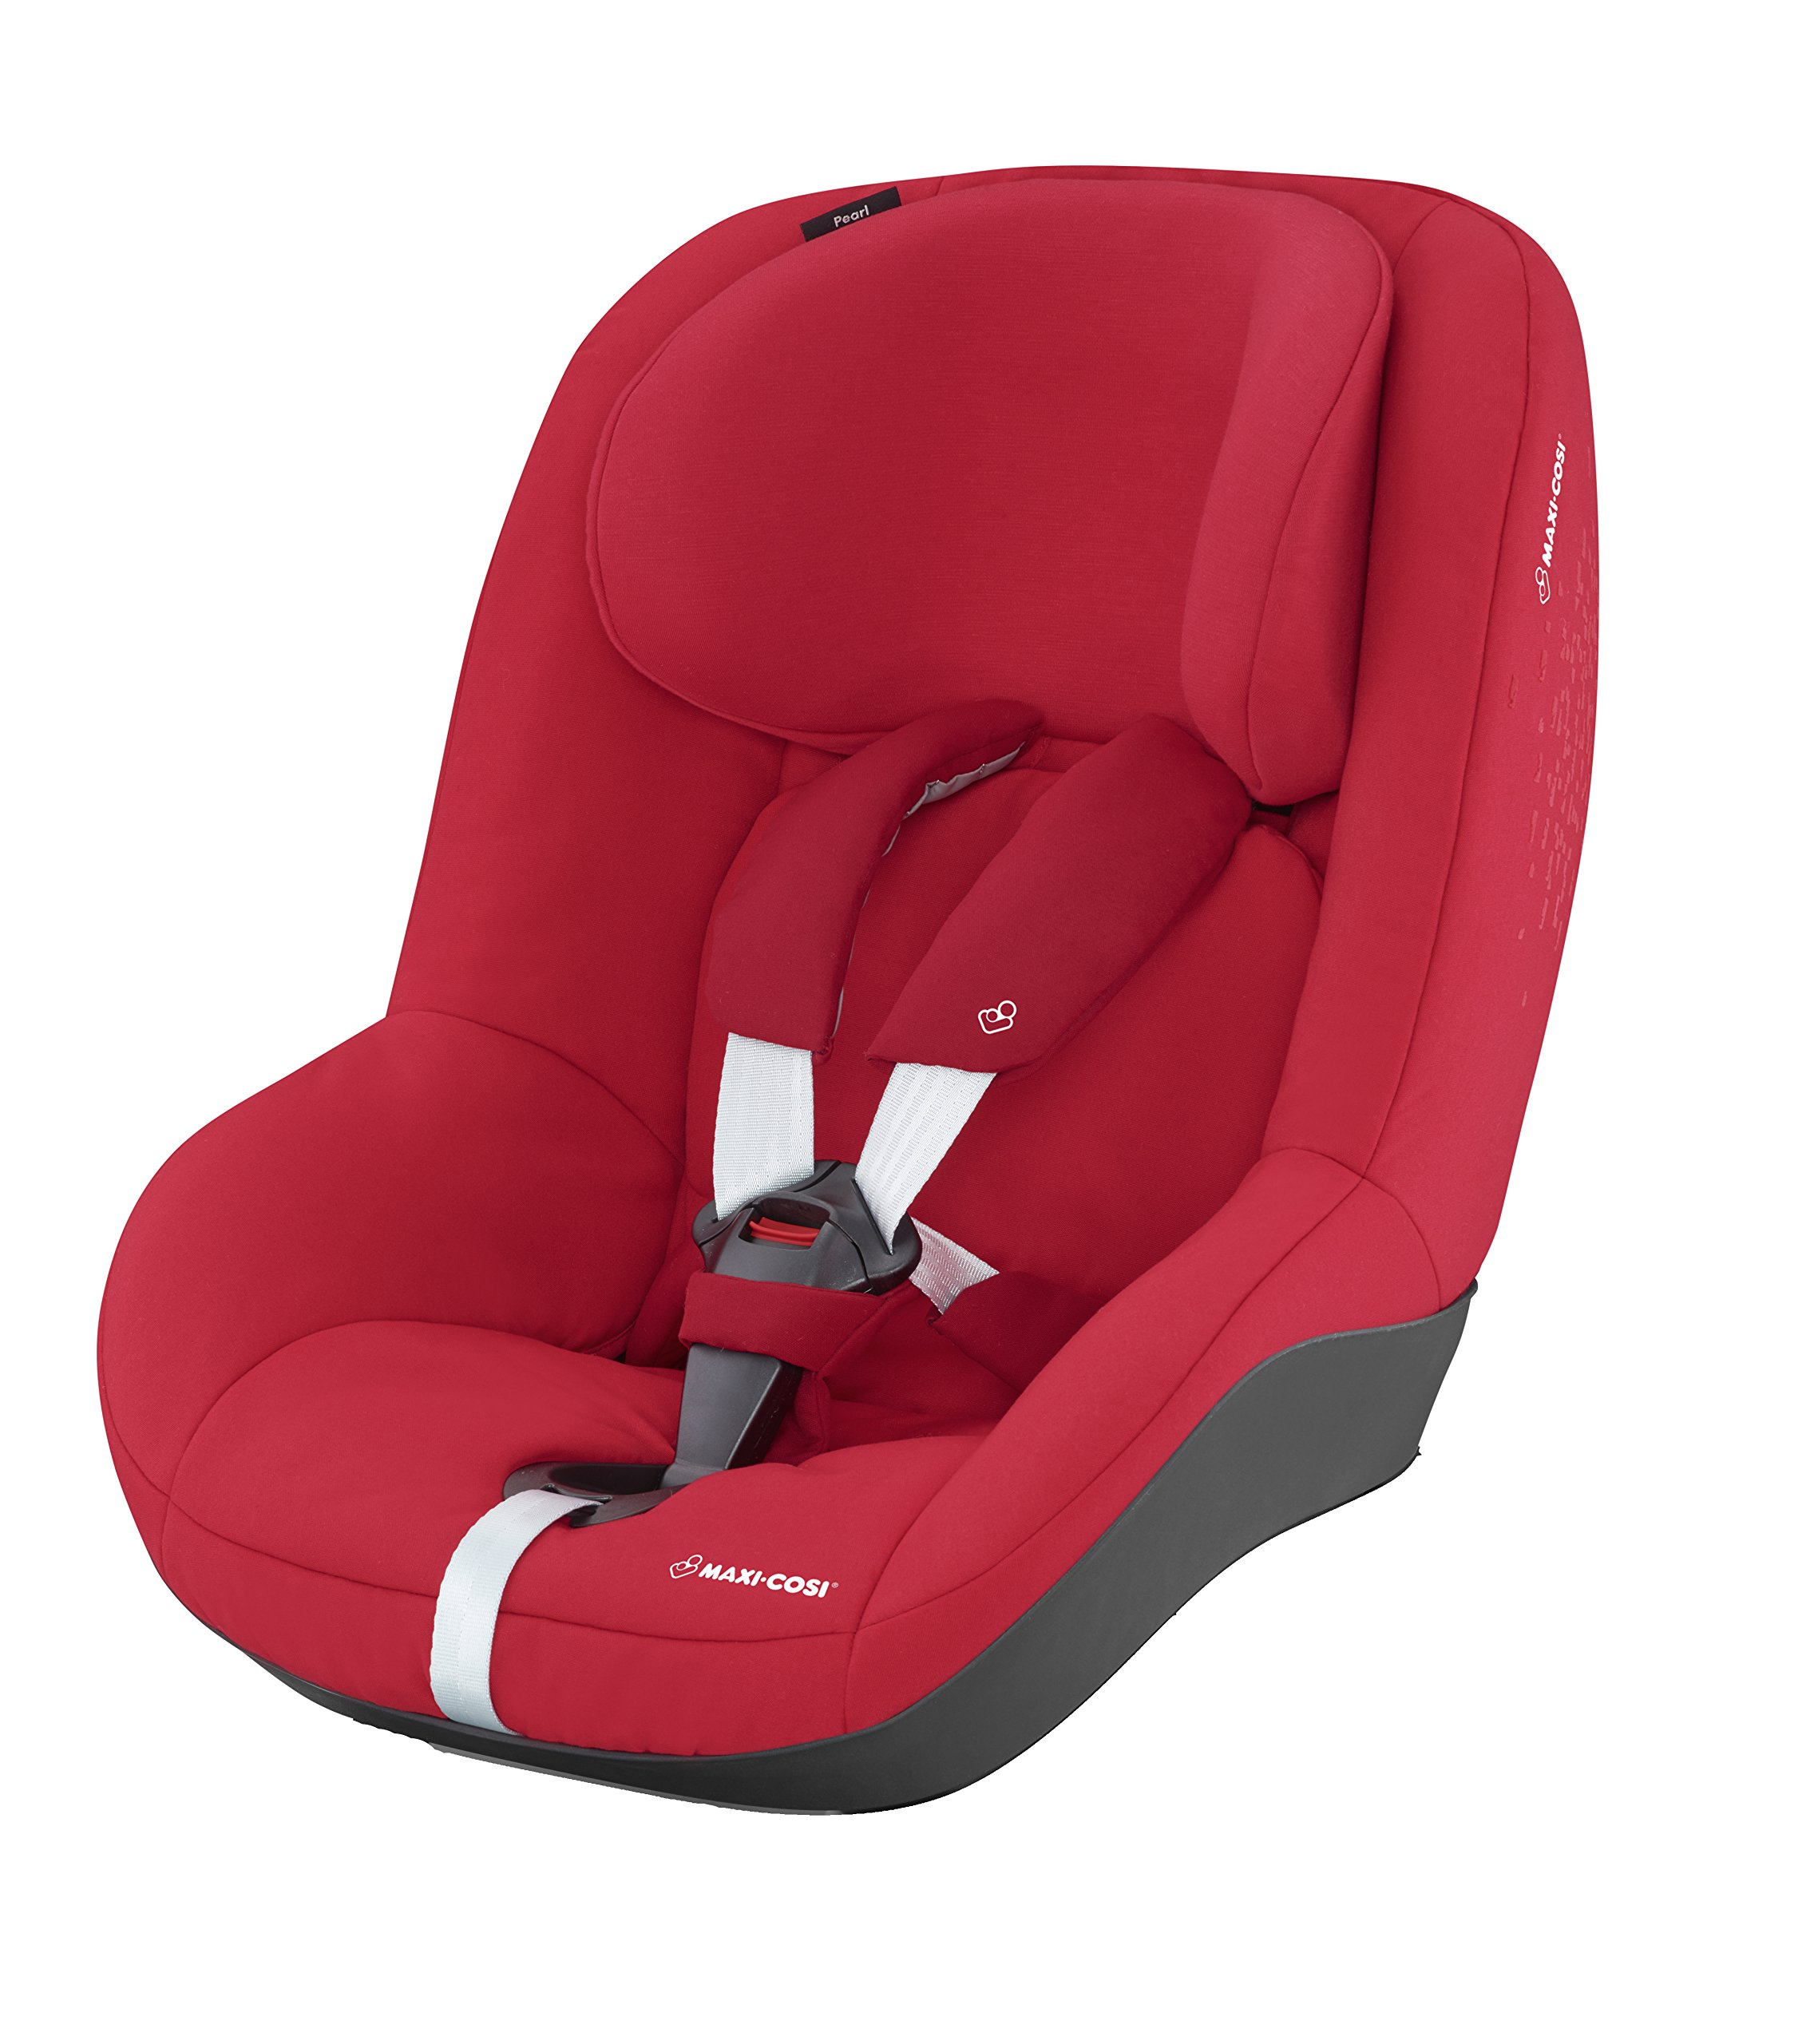 Maxi-Cosi Pearl Car Seat, Vivid Red + FamilyFix Car Seat Base ISOFIX, Black Maxi-Cosi Isofix anchorages provides the safest, easiest and quickest way to install a car seat  Innovative stay open harness stays open to easily get the child in and out in seconds  ISOFIX car seat base suitable for children up to 18 kg (from birth to 4 years) 2